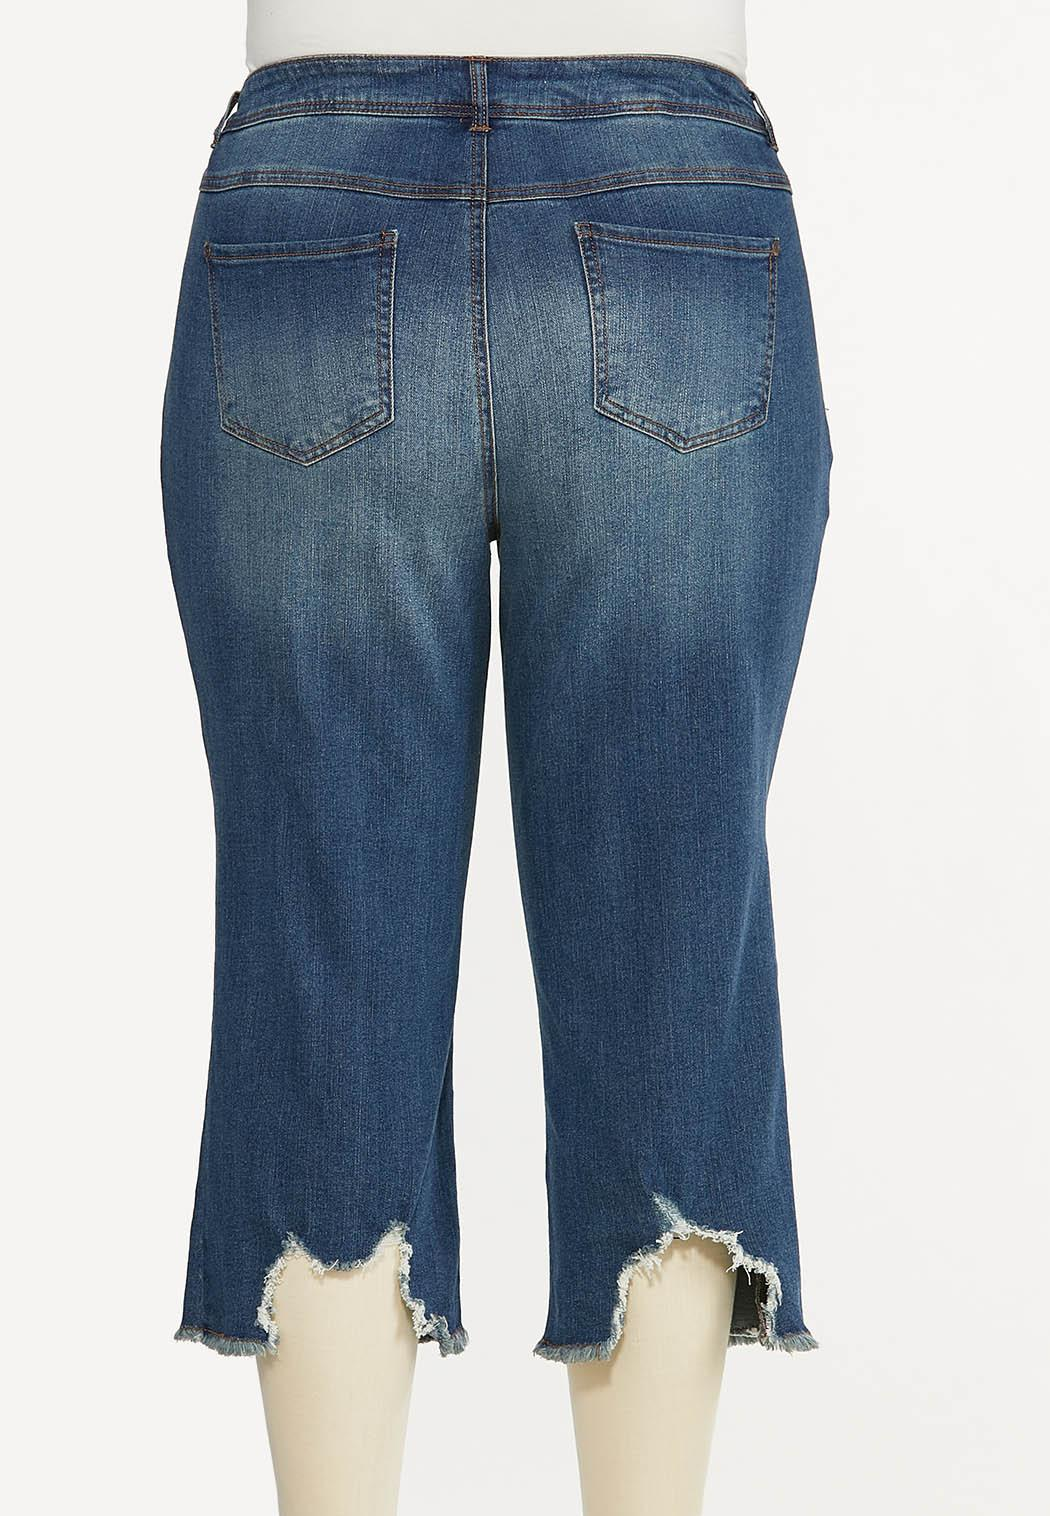 Plus Size Cropped Distressed Flare Jeans (Item #44593086)